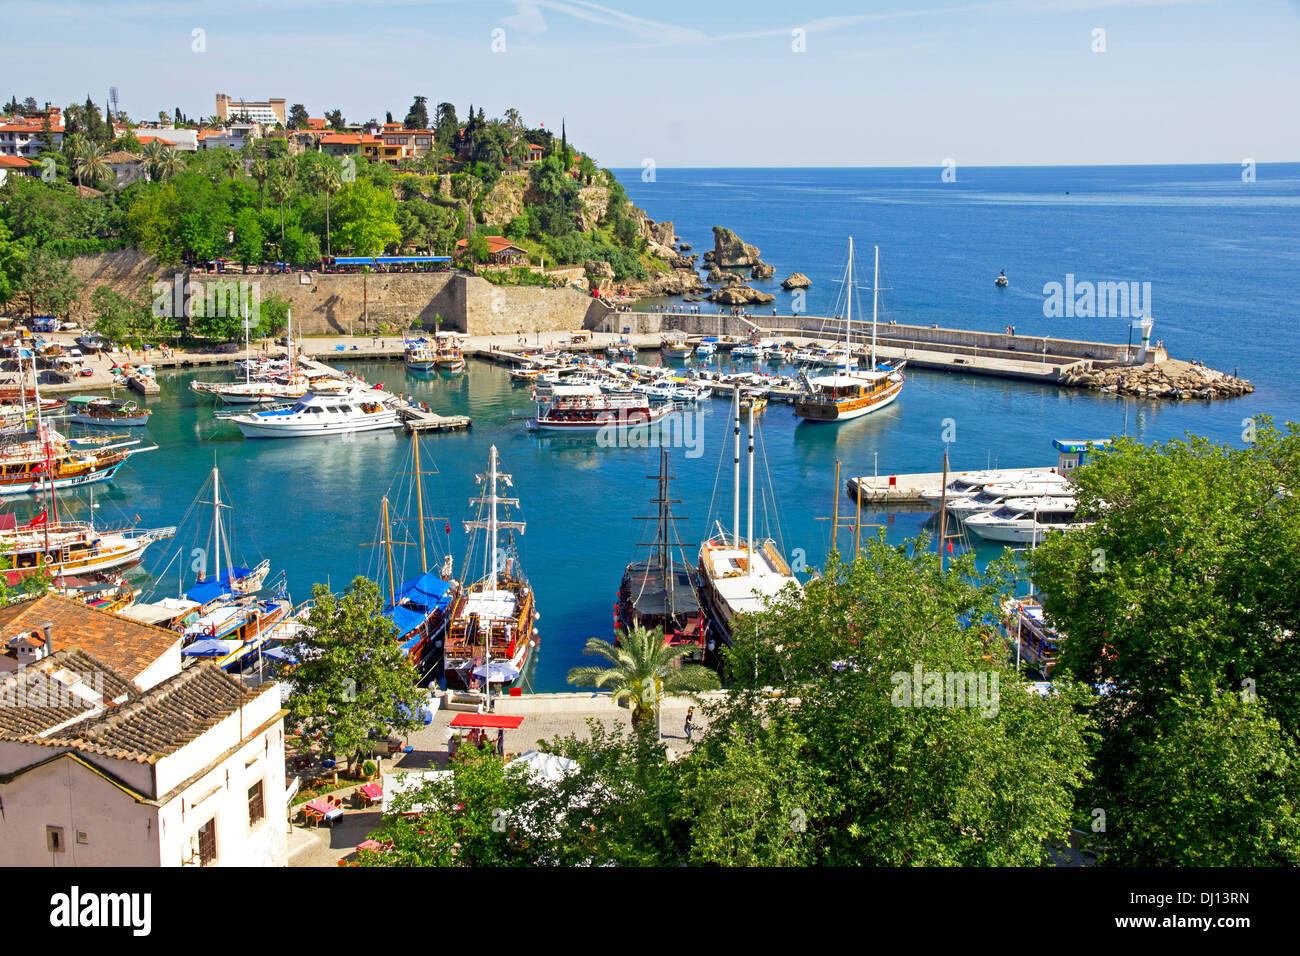 Turkey. Antalya town. Beautiful view of harbor with yachts - Stock Image